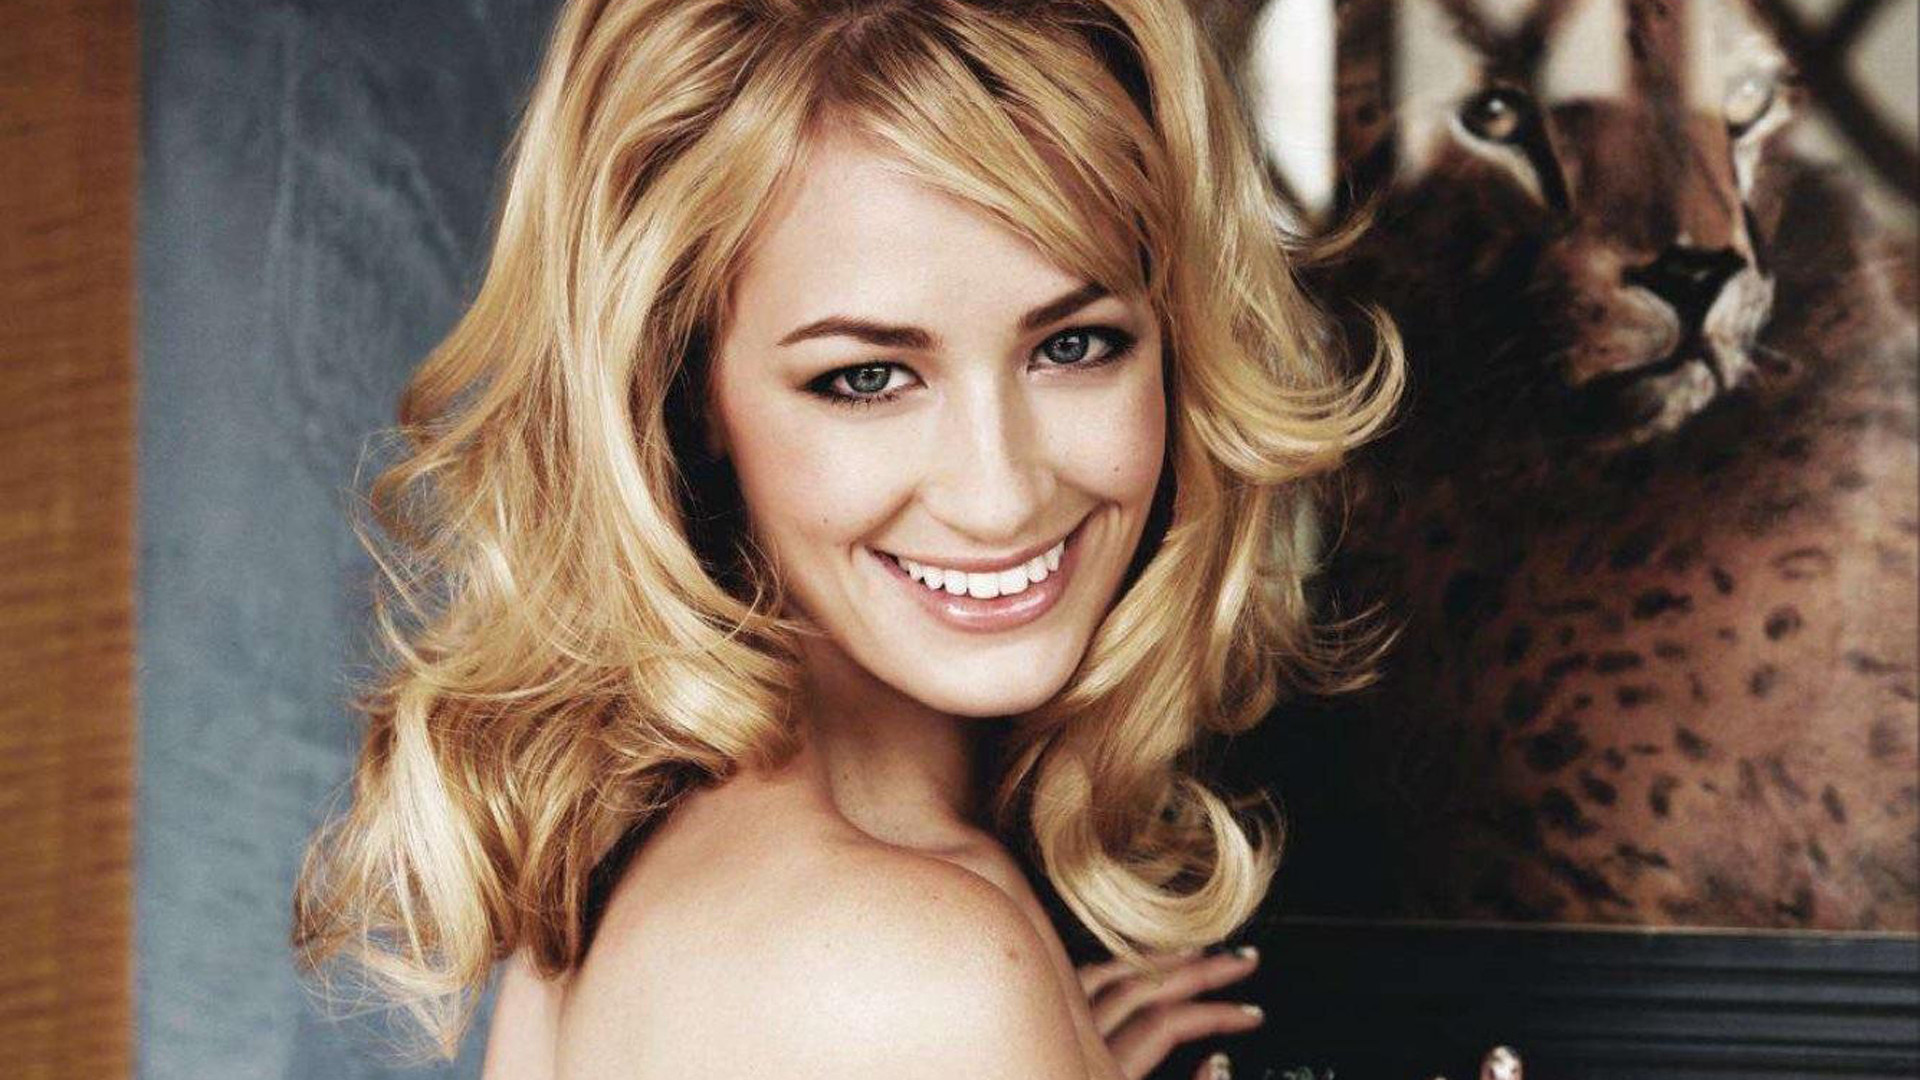 Res: 1920x1080, HD Beth Behrs Wallpapers 01 HD Beth Behrs Wallpapers 02